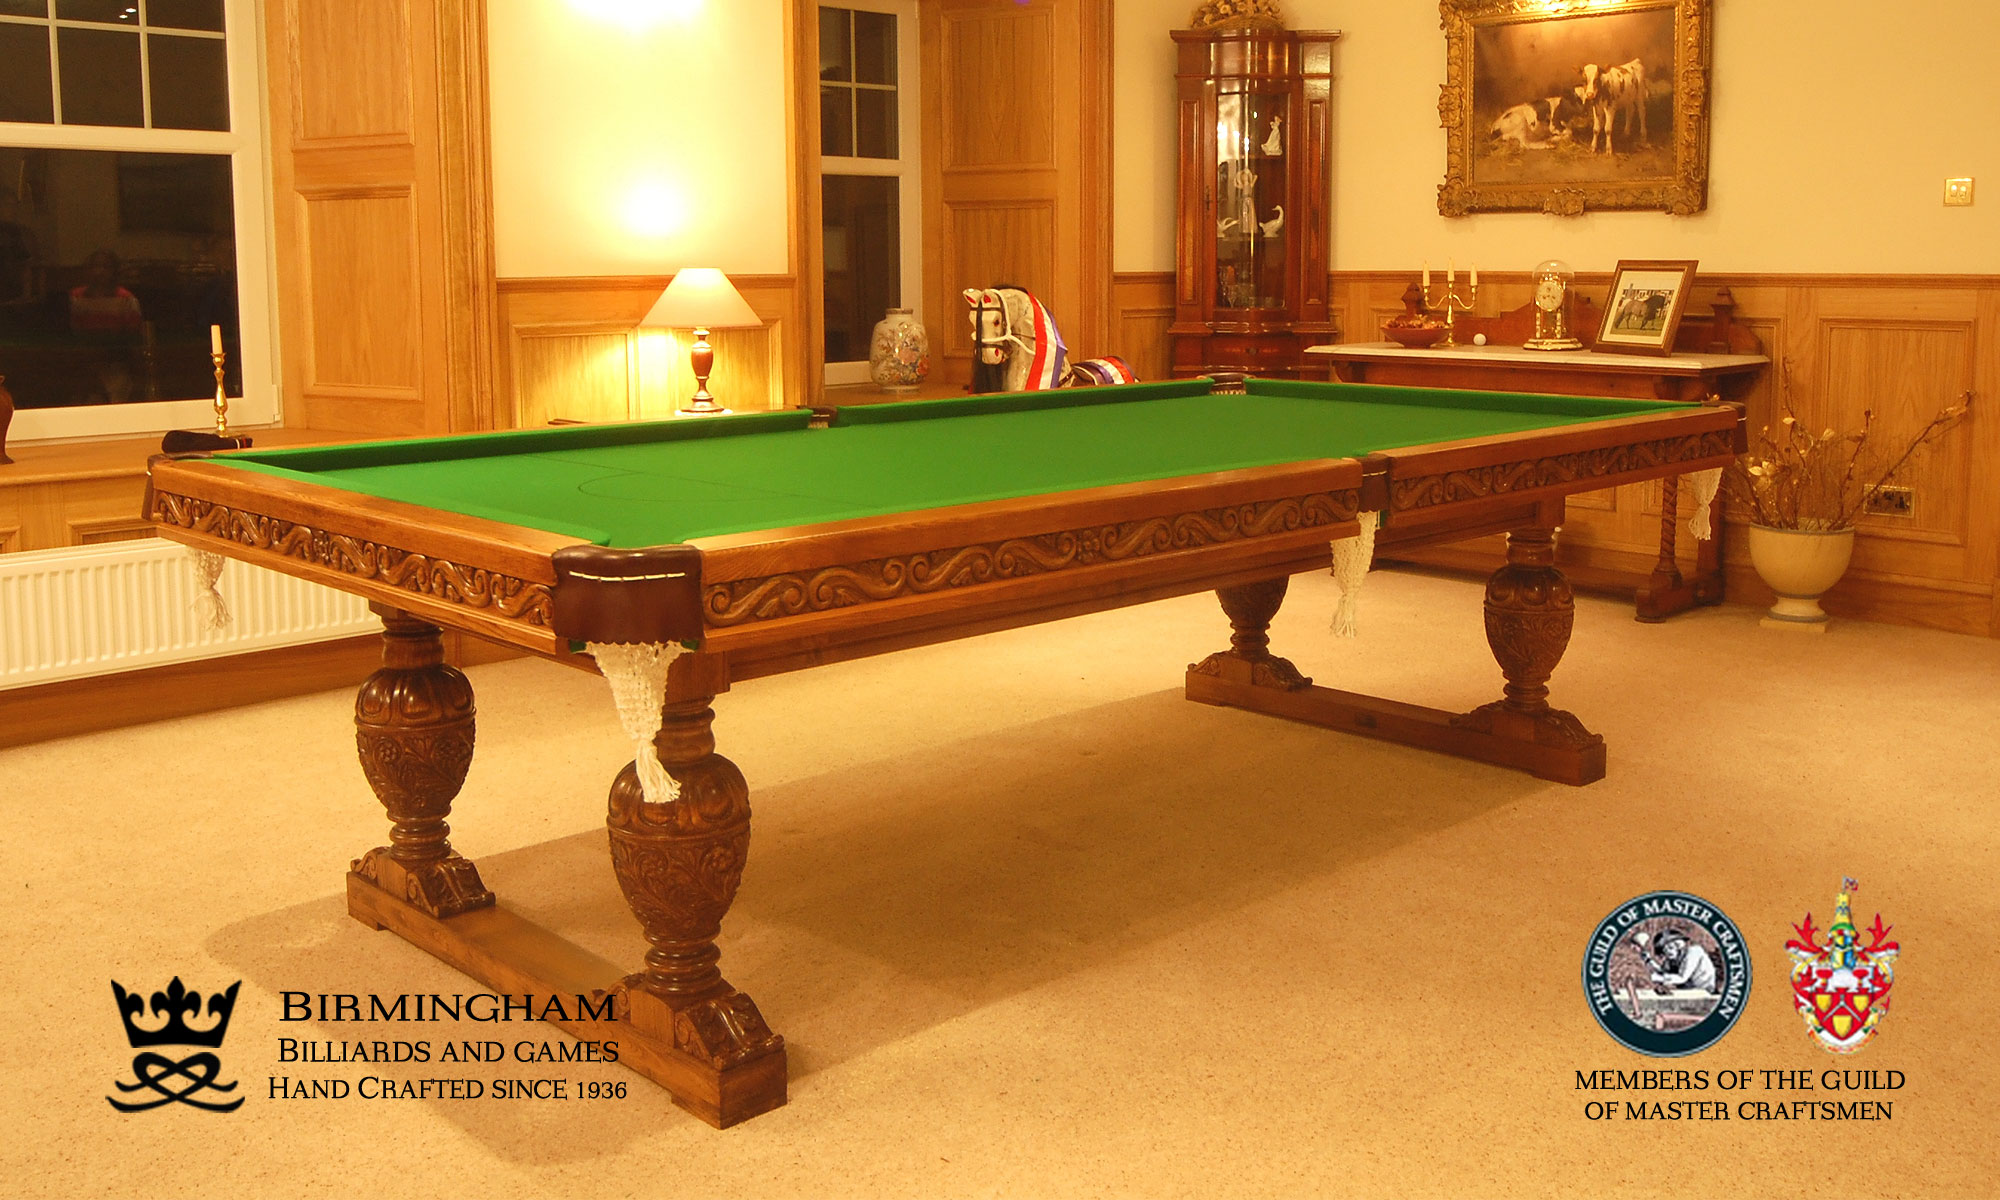 The Balmoral-hand carved pool table, championship green baize, side view